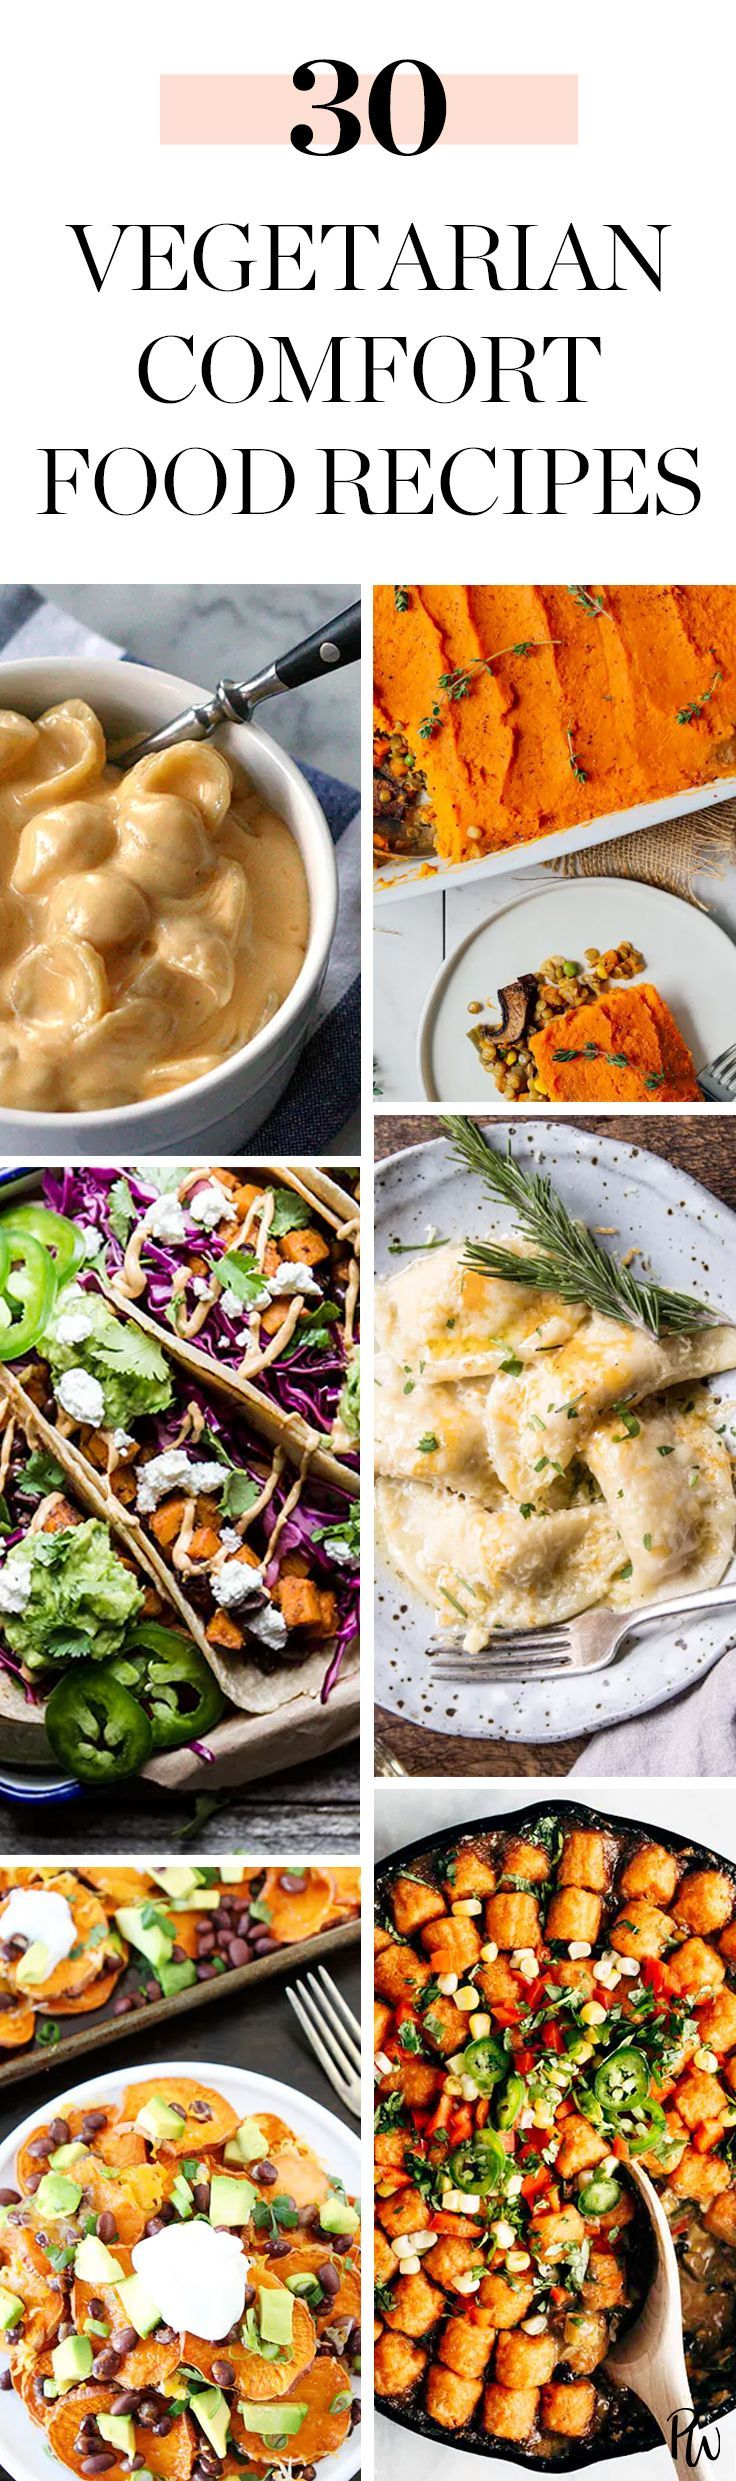 30 vegetarian comfort food recipes to warm you right up get the best vegetarian comfort food recipes here vegetarian comfortfood sweetpotato forumfinder Image collections